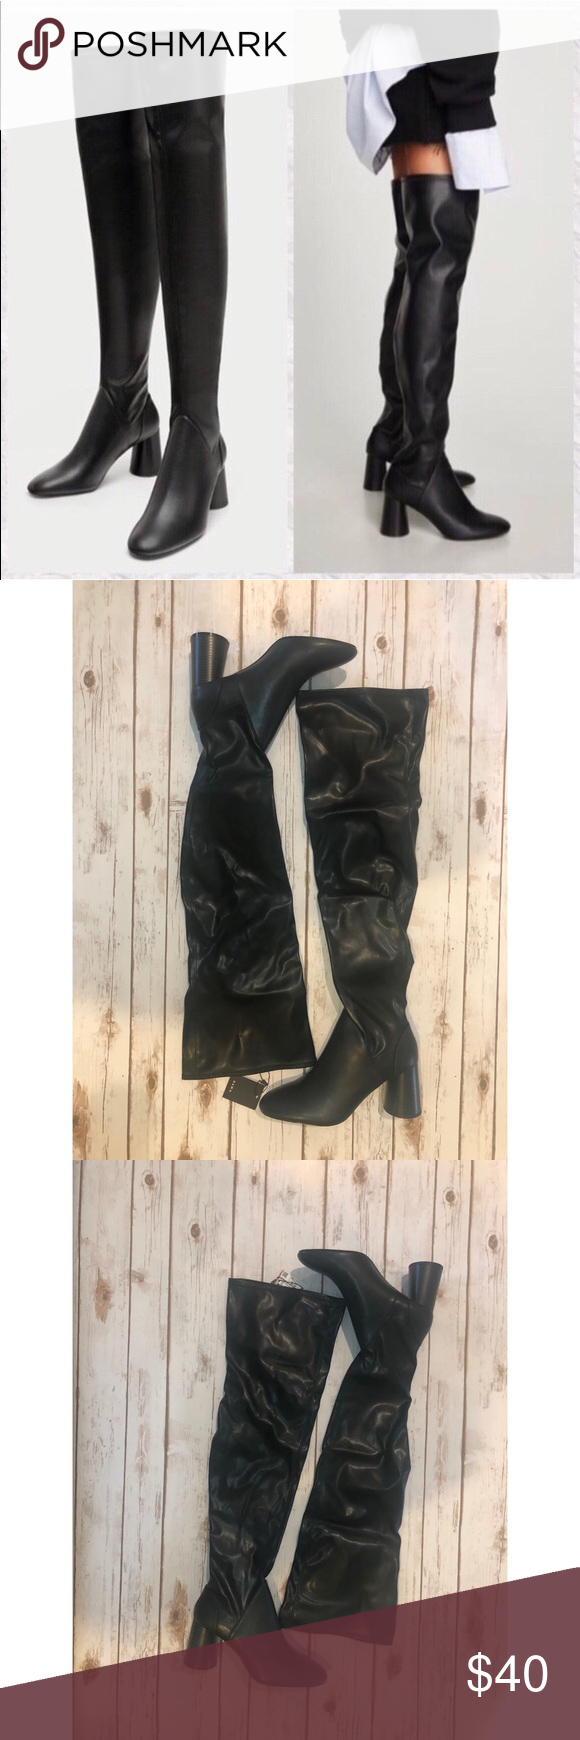 0eea0f6ba76 Zara over the knee boot 👢 Black high heel boots with cylindrical heels and  stretch legs. Heel height 7.5 cm.   2.9″ Zara Shoes Over the Knee Boots